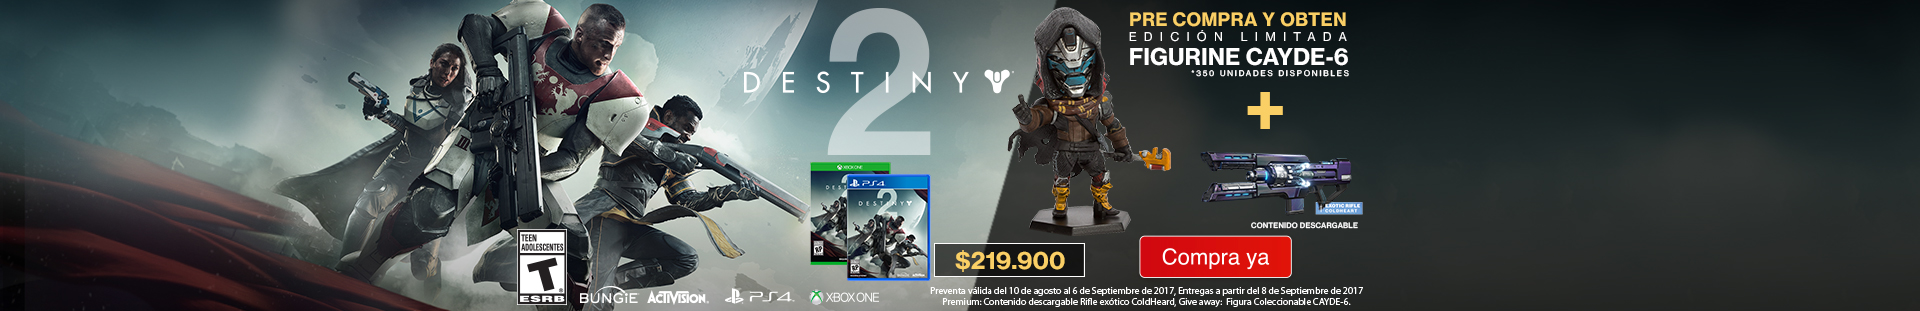 CAT-AK-KT-10-videojuegos-destiny2-cat-agosto-10-sep8